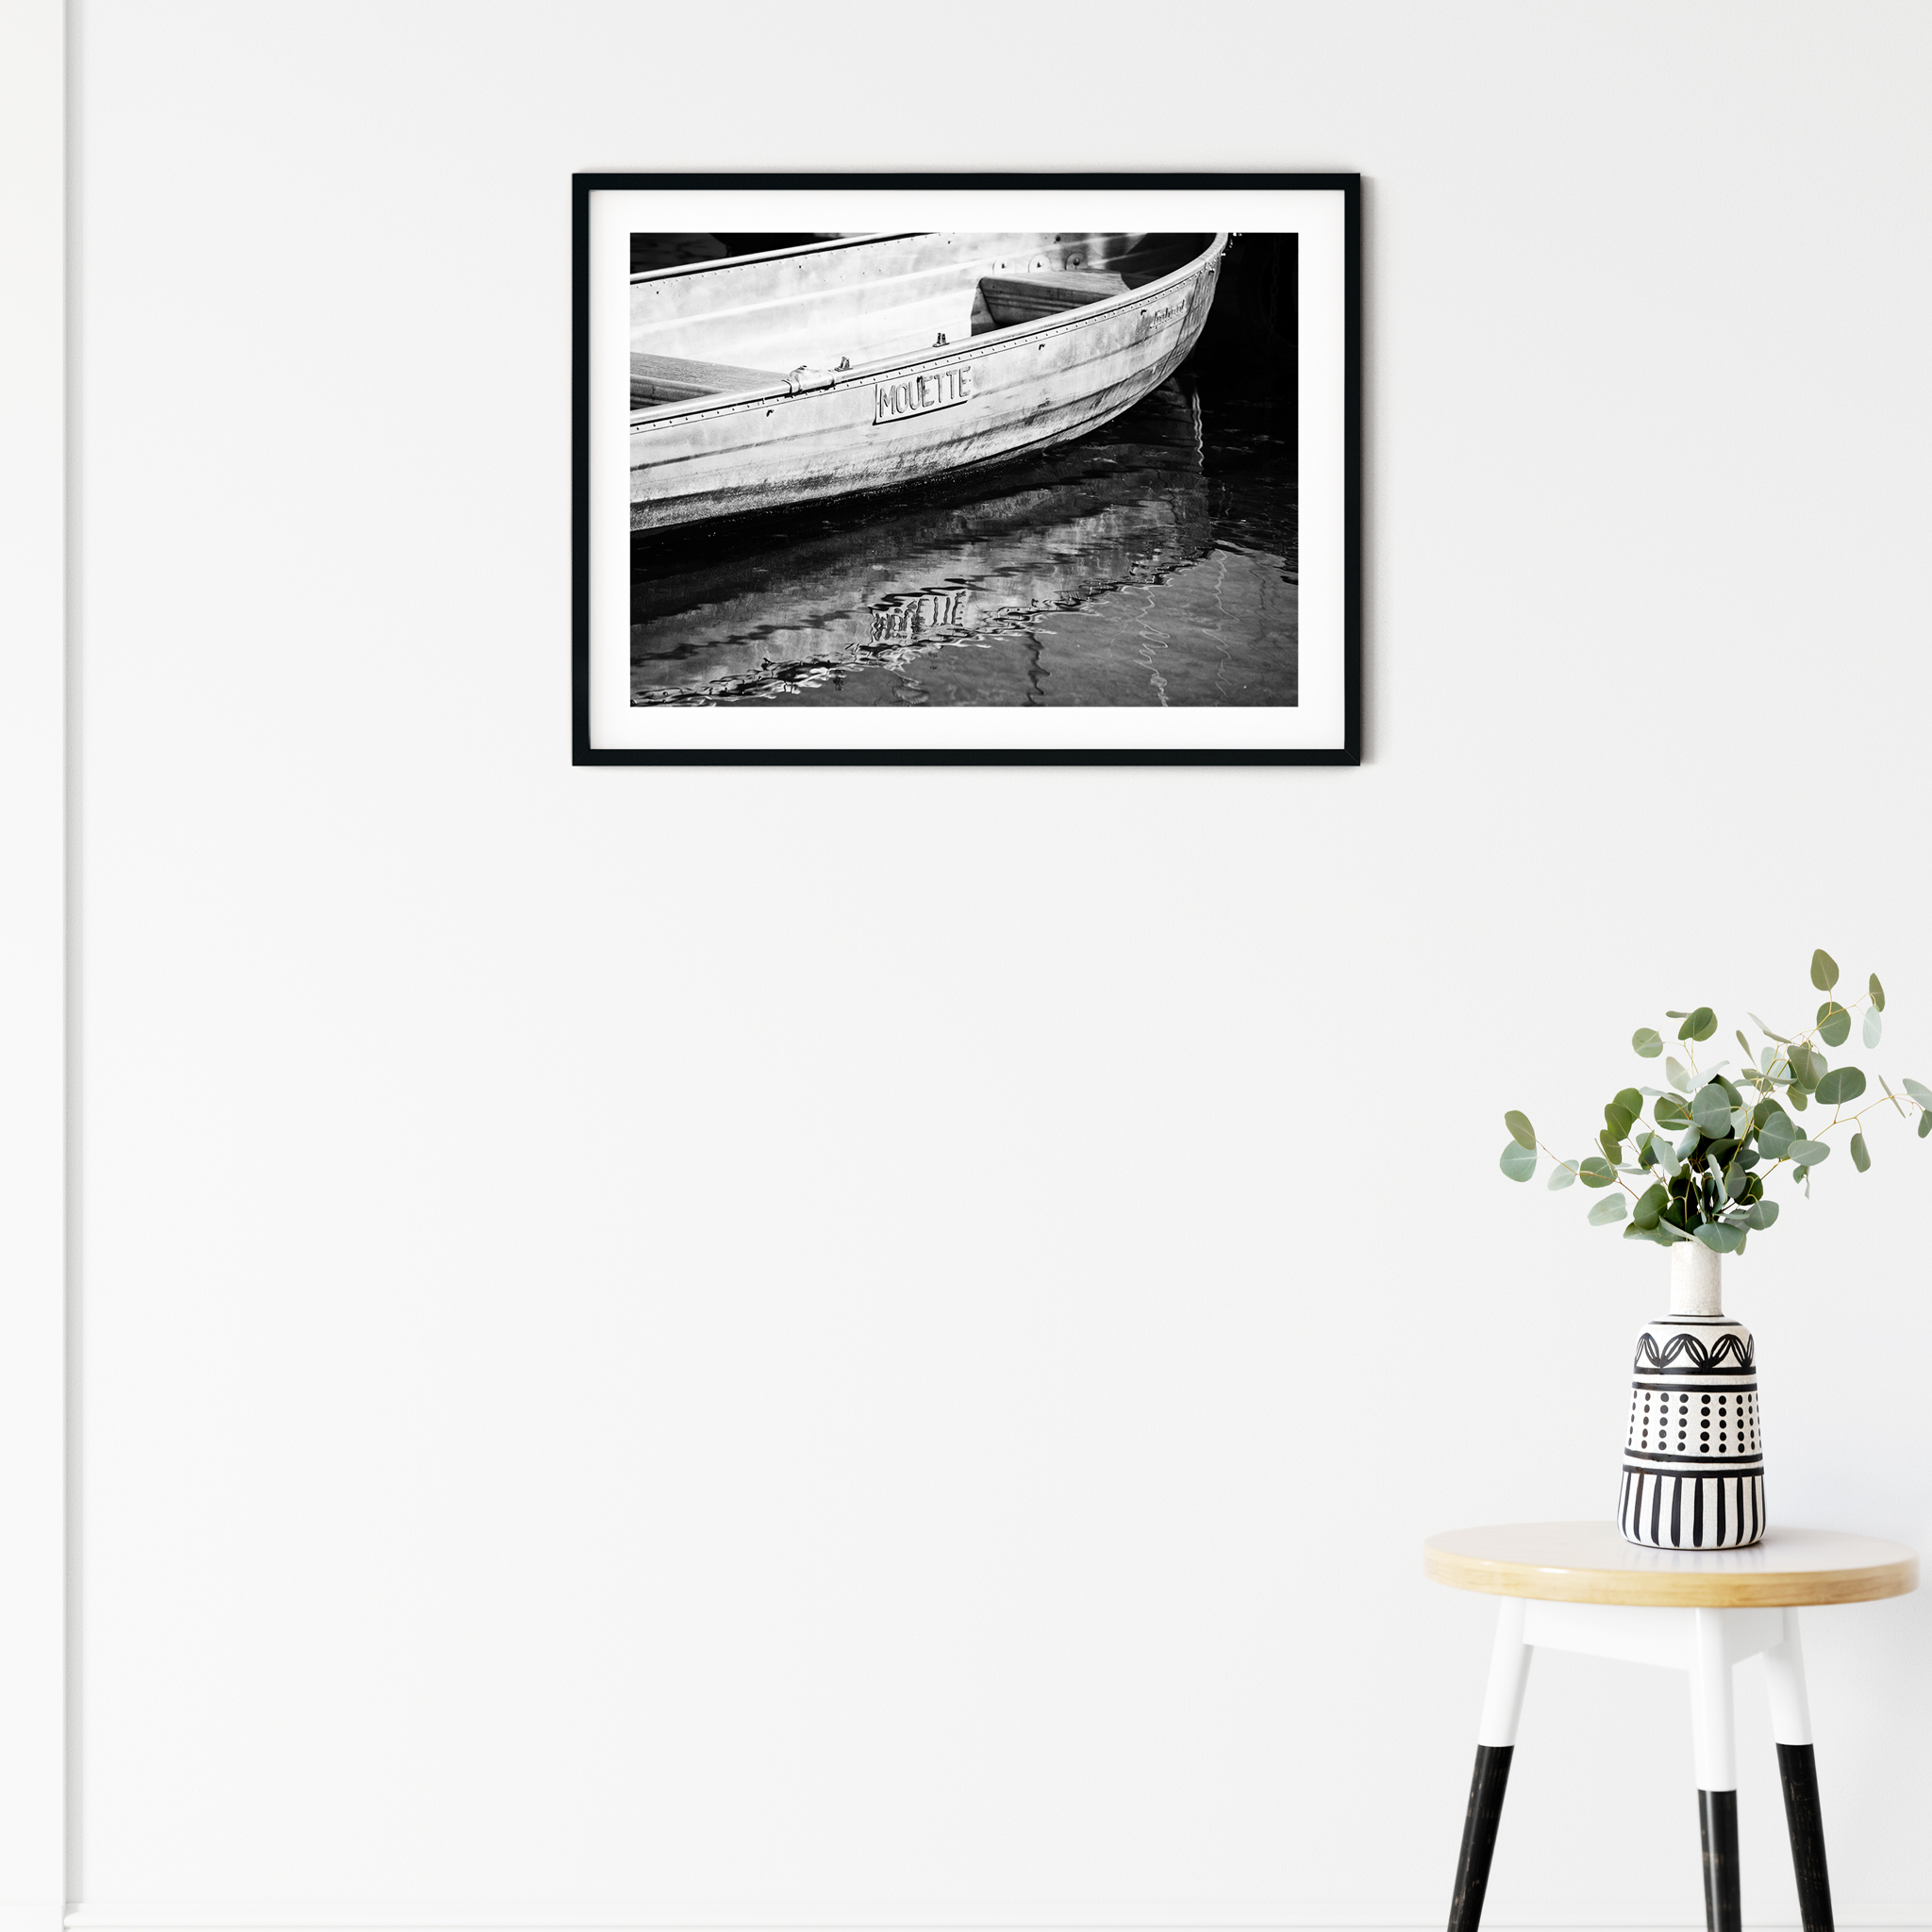 Boat in Geneva - black and white print with border in black frame on the wall